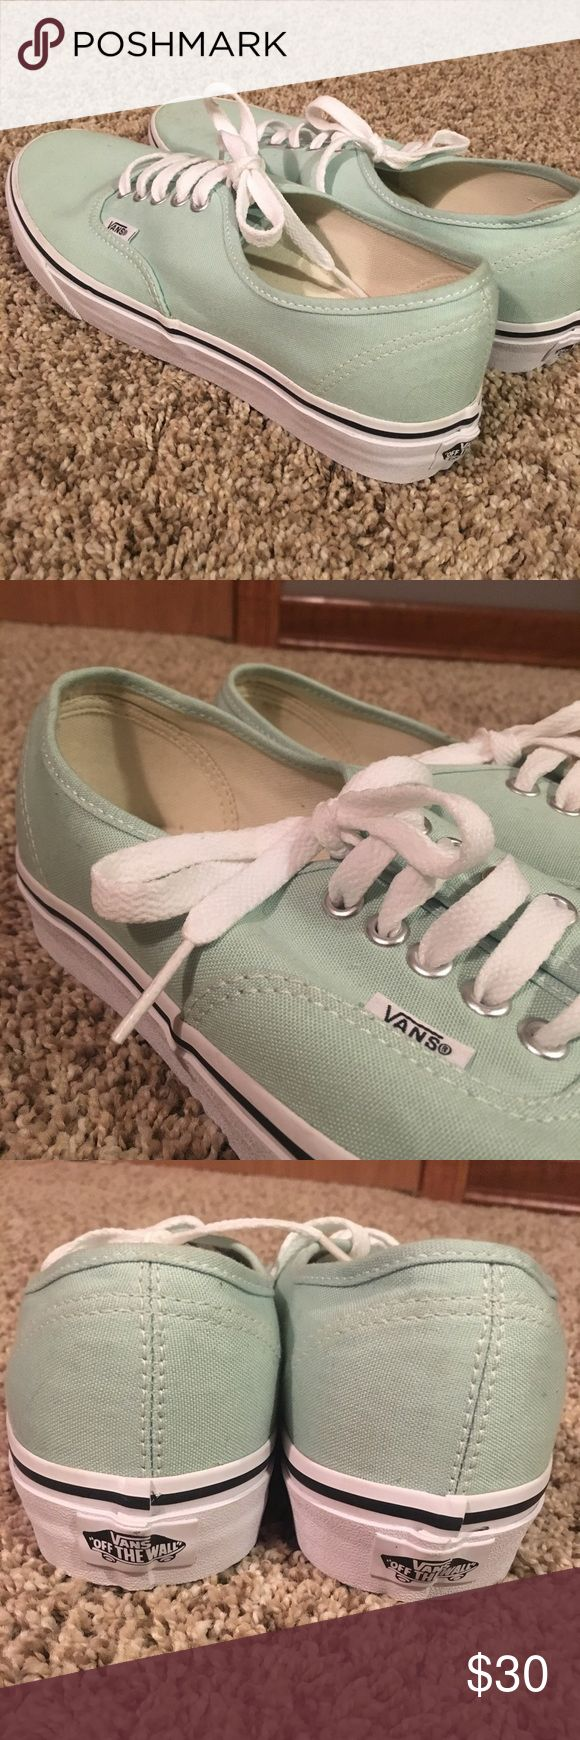 Teal vans - NEVER BEEN WORN Teal Vans - SZ 9 women's, SZ 7.5 men's - I have never worn these, they have just sat in my closet since I've grown out of my van phase! Vans Shoes Sneakers